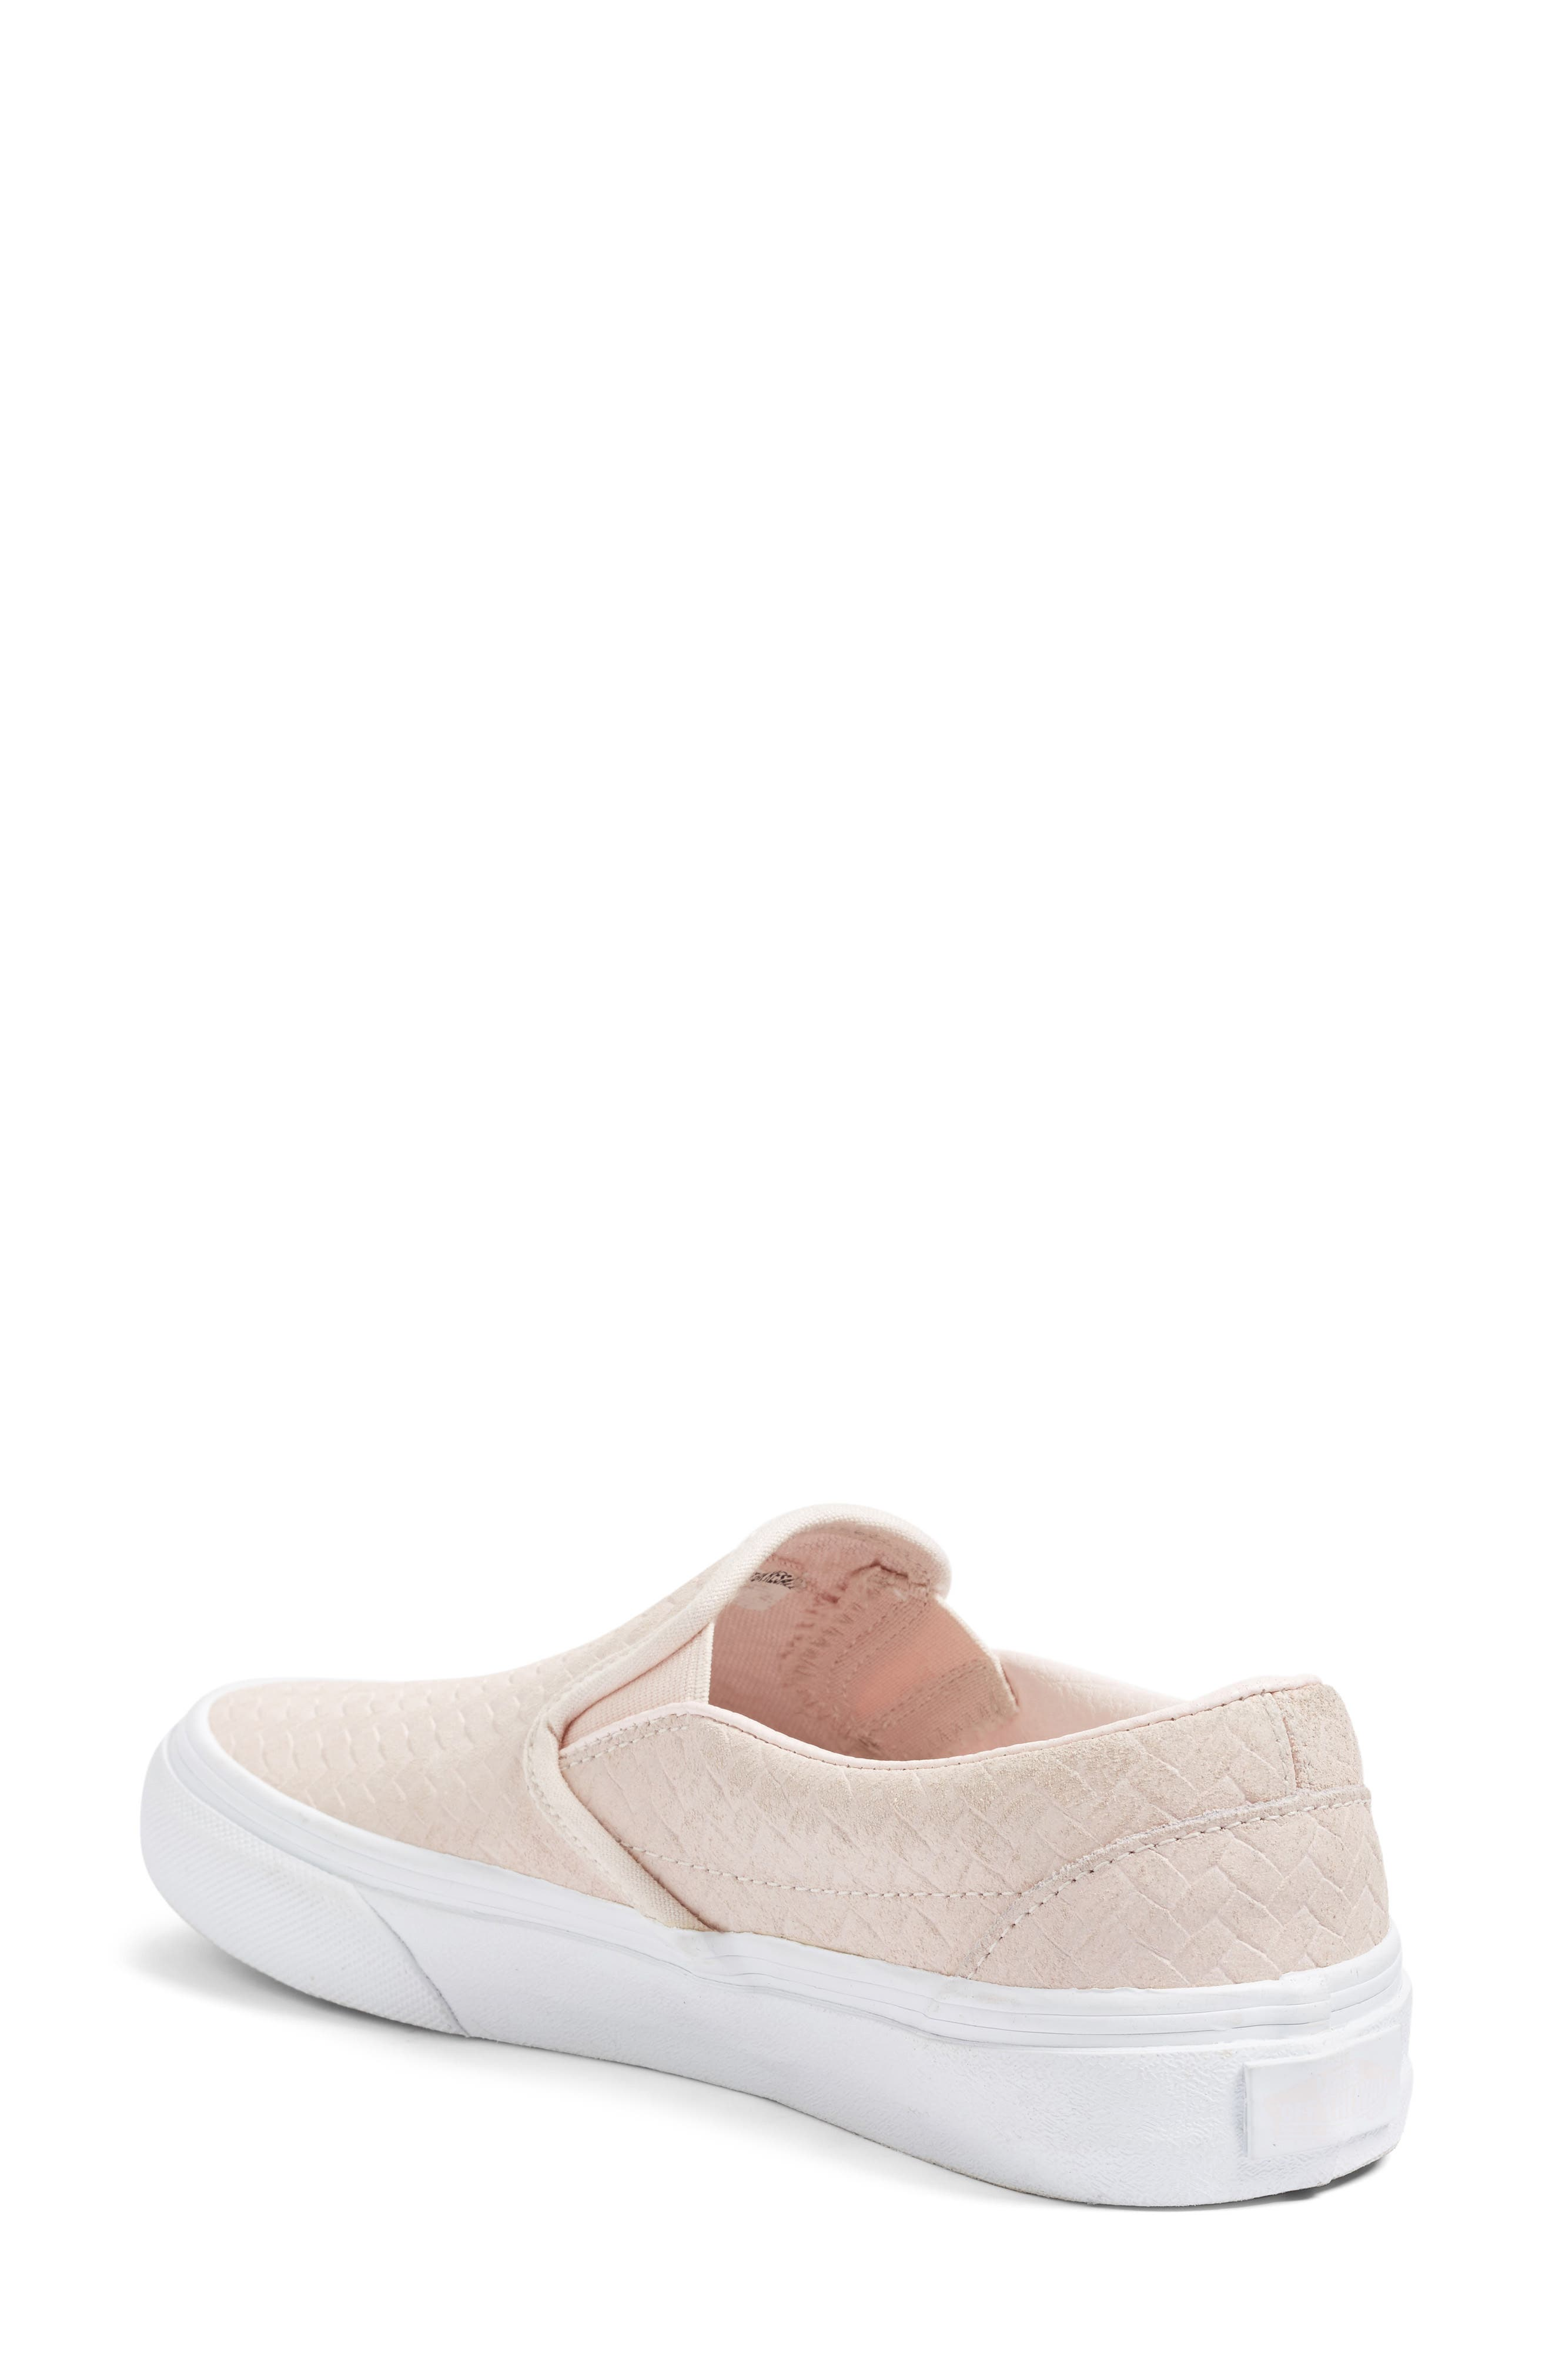 Classic Slip-On Sneaker,                             Alternate thumbnail 172, color,